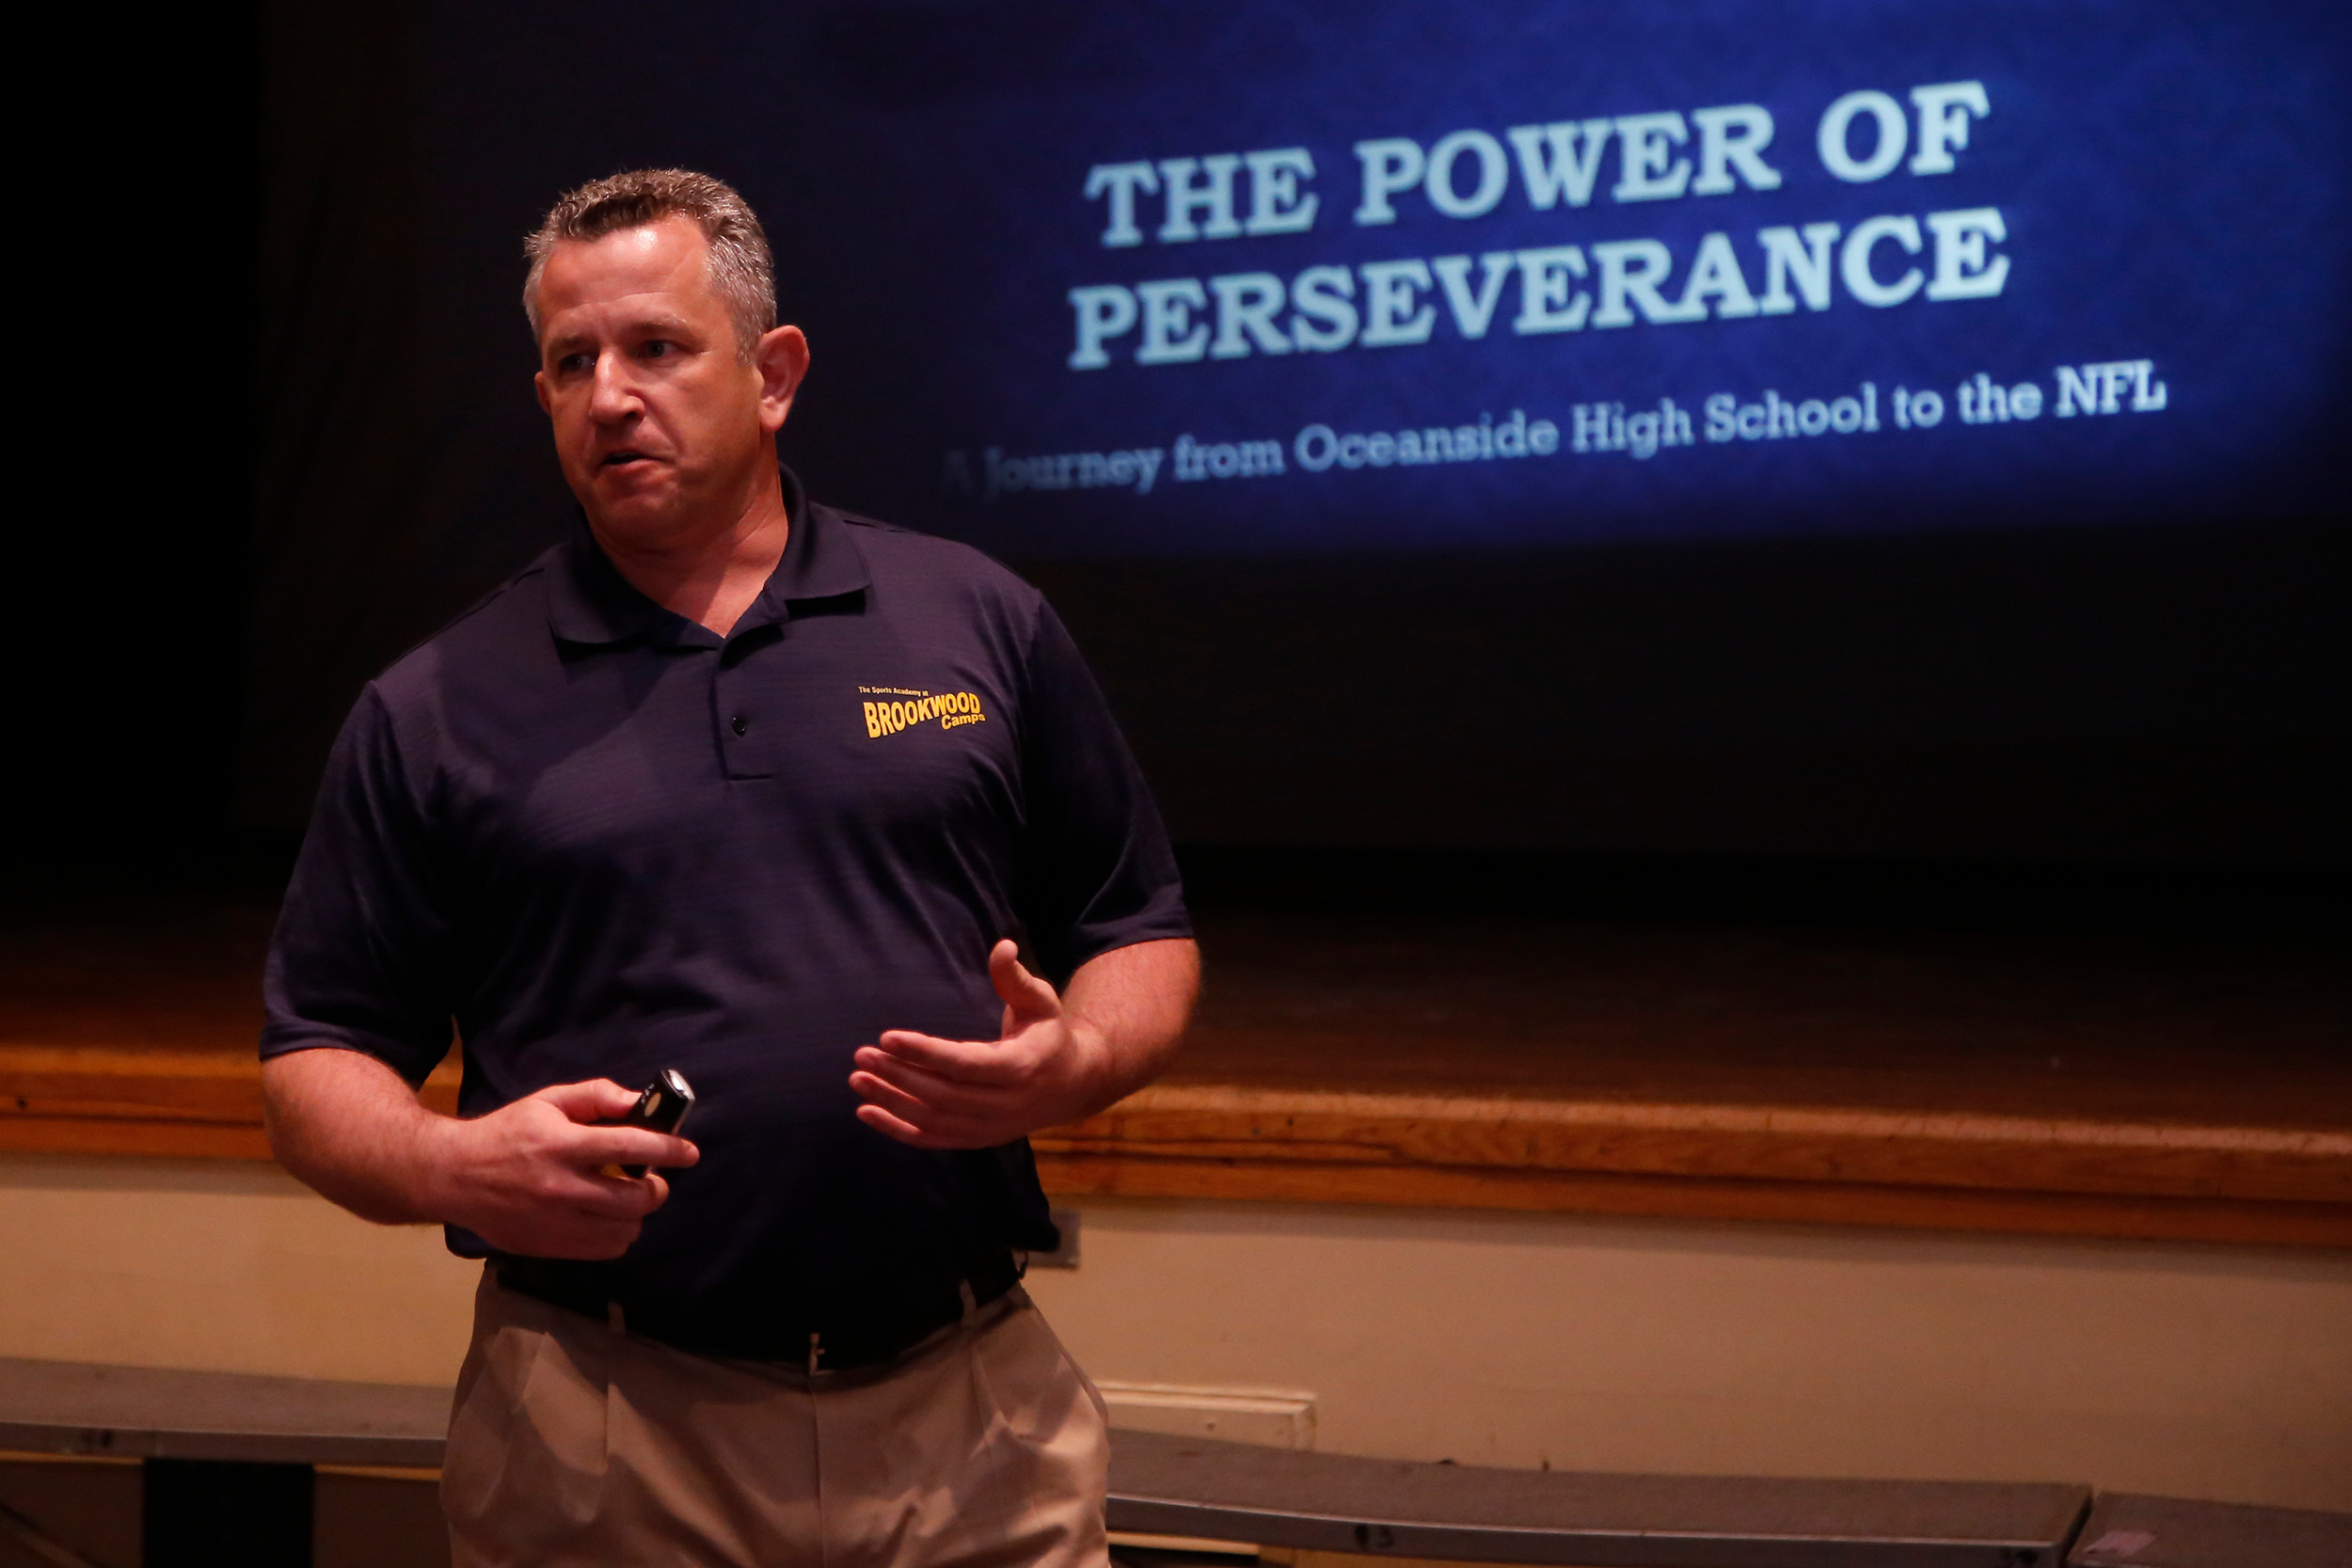 Oceanside High School alum and former NFL Quarterback Jay Fiedler discussed the power of perseverance to OHS students during Human Relations Day on April 5.